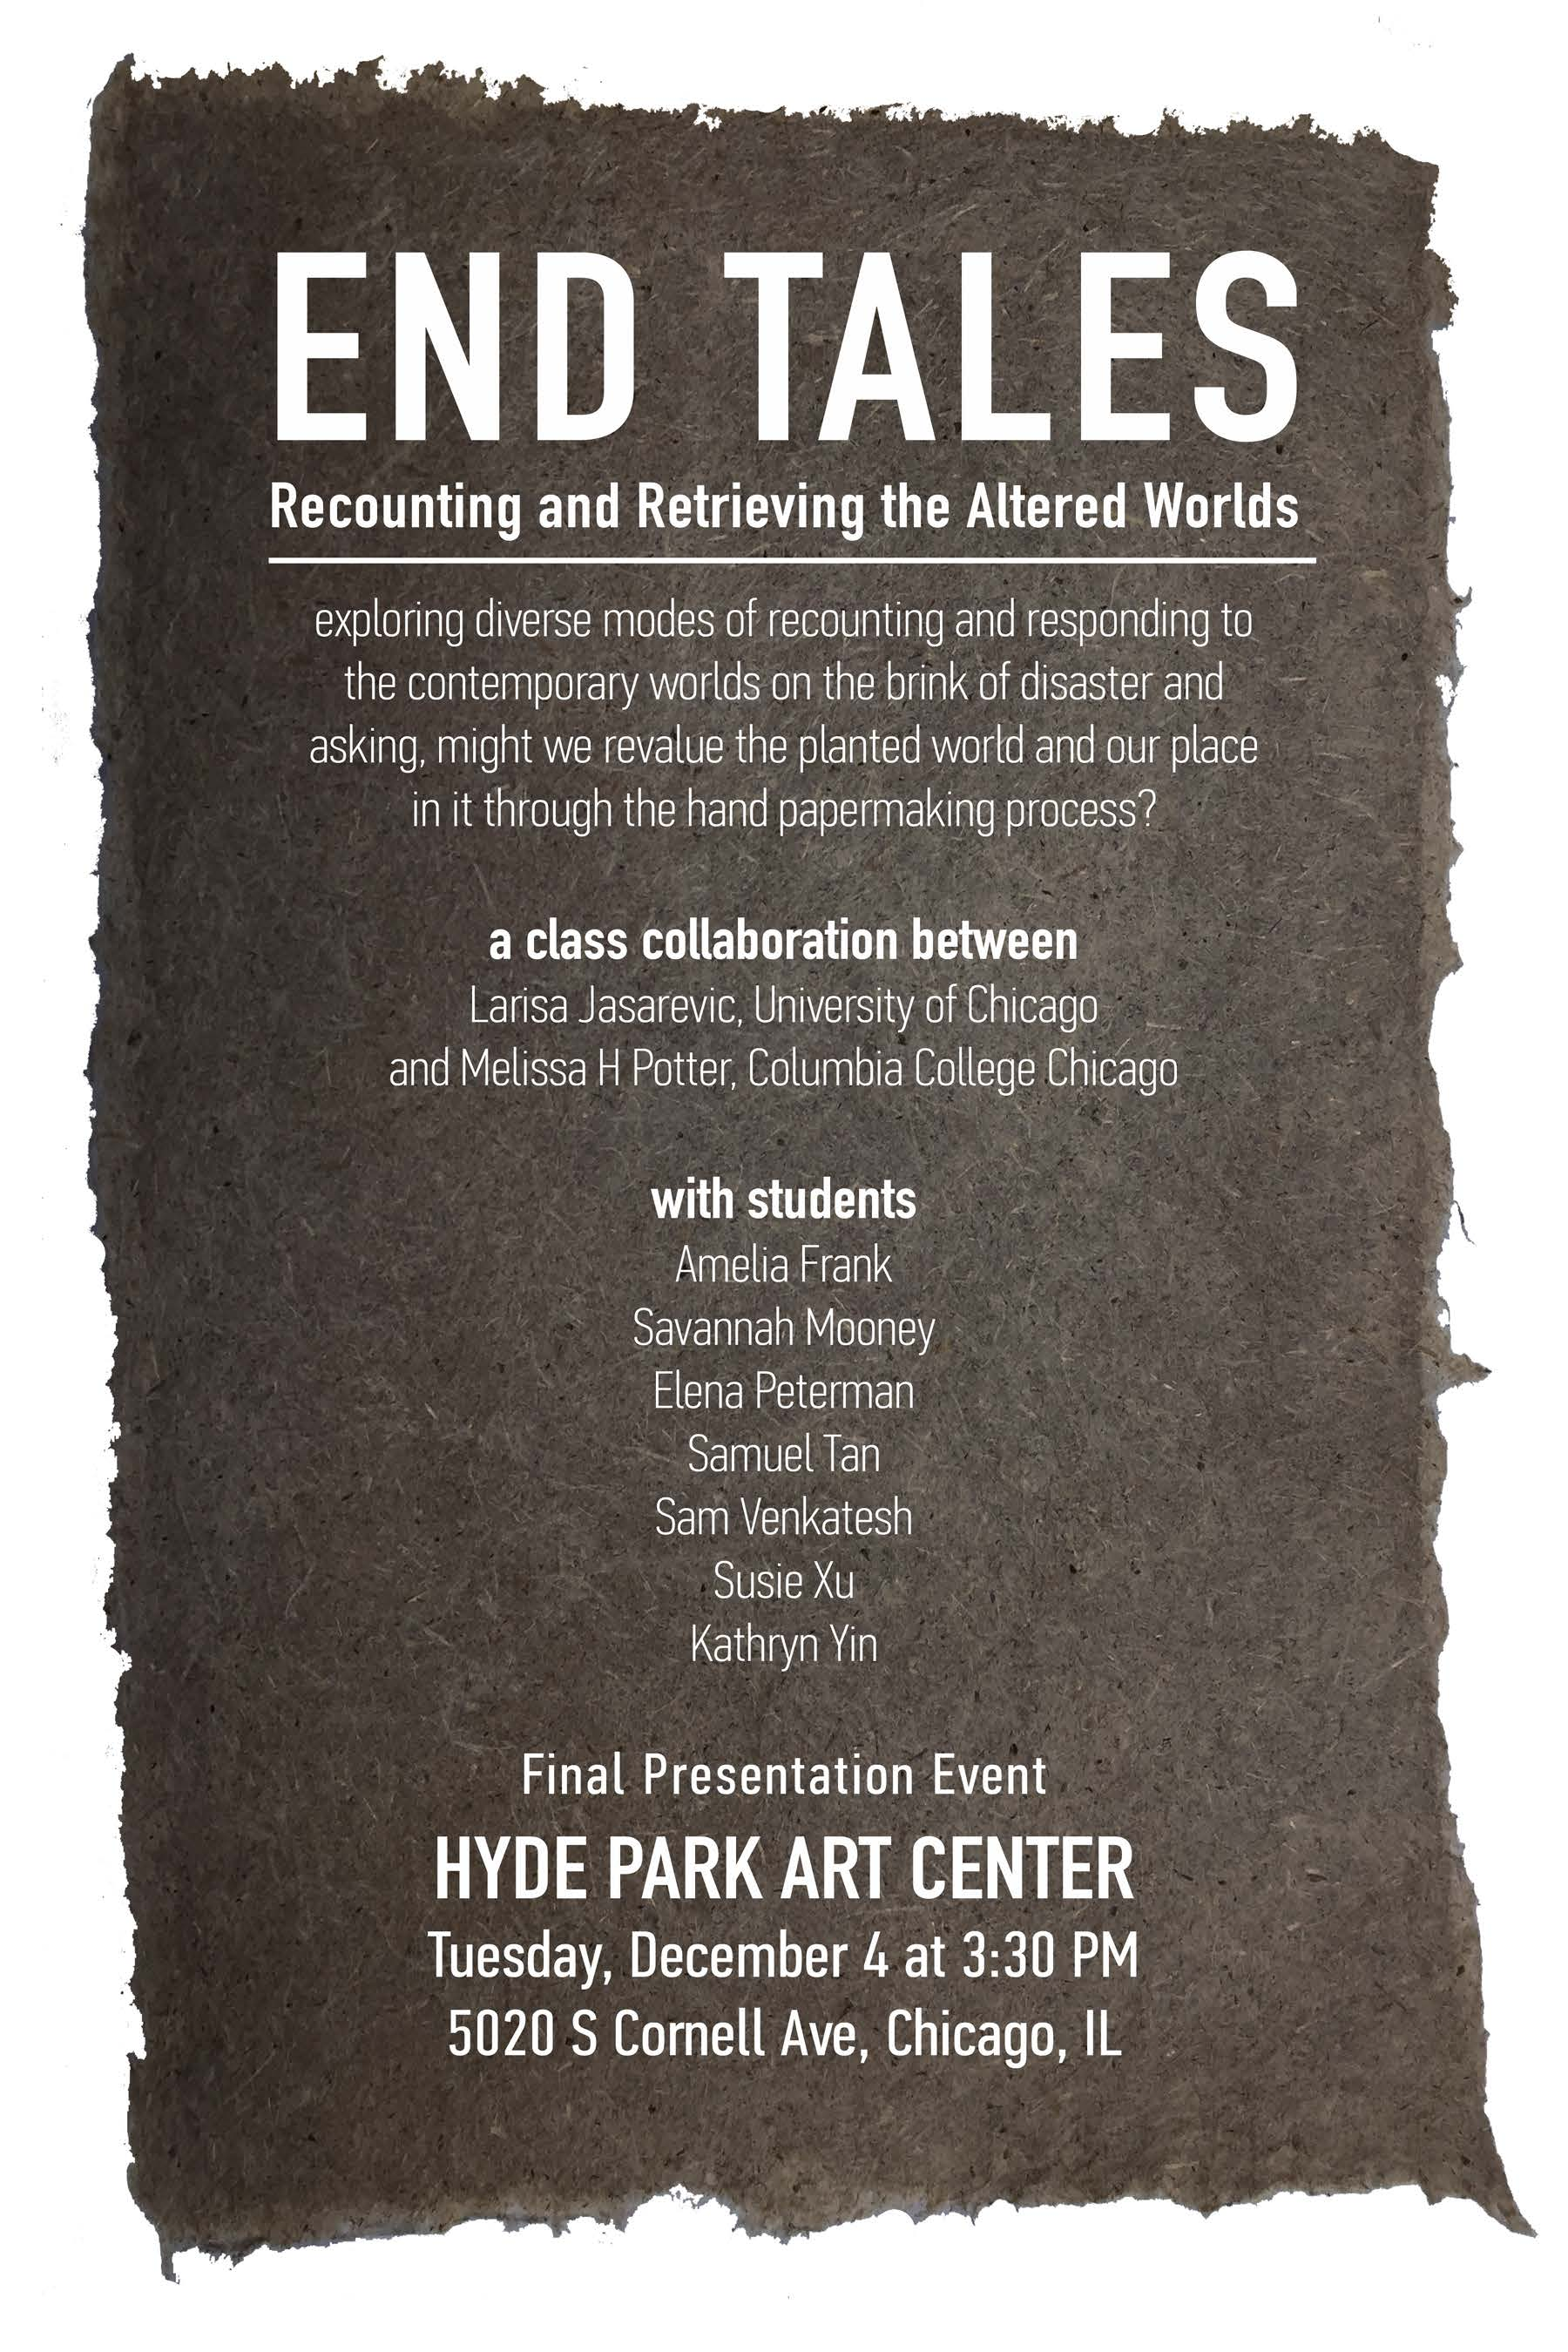 End Tales: Recounting and Retrieving the Altered Worlds event poster